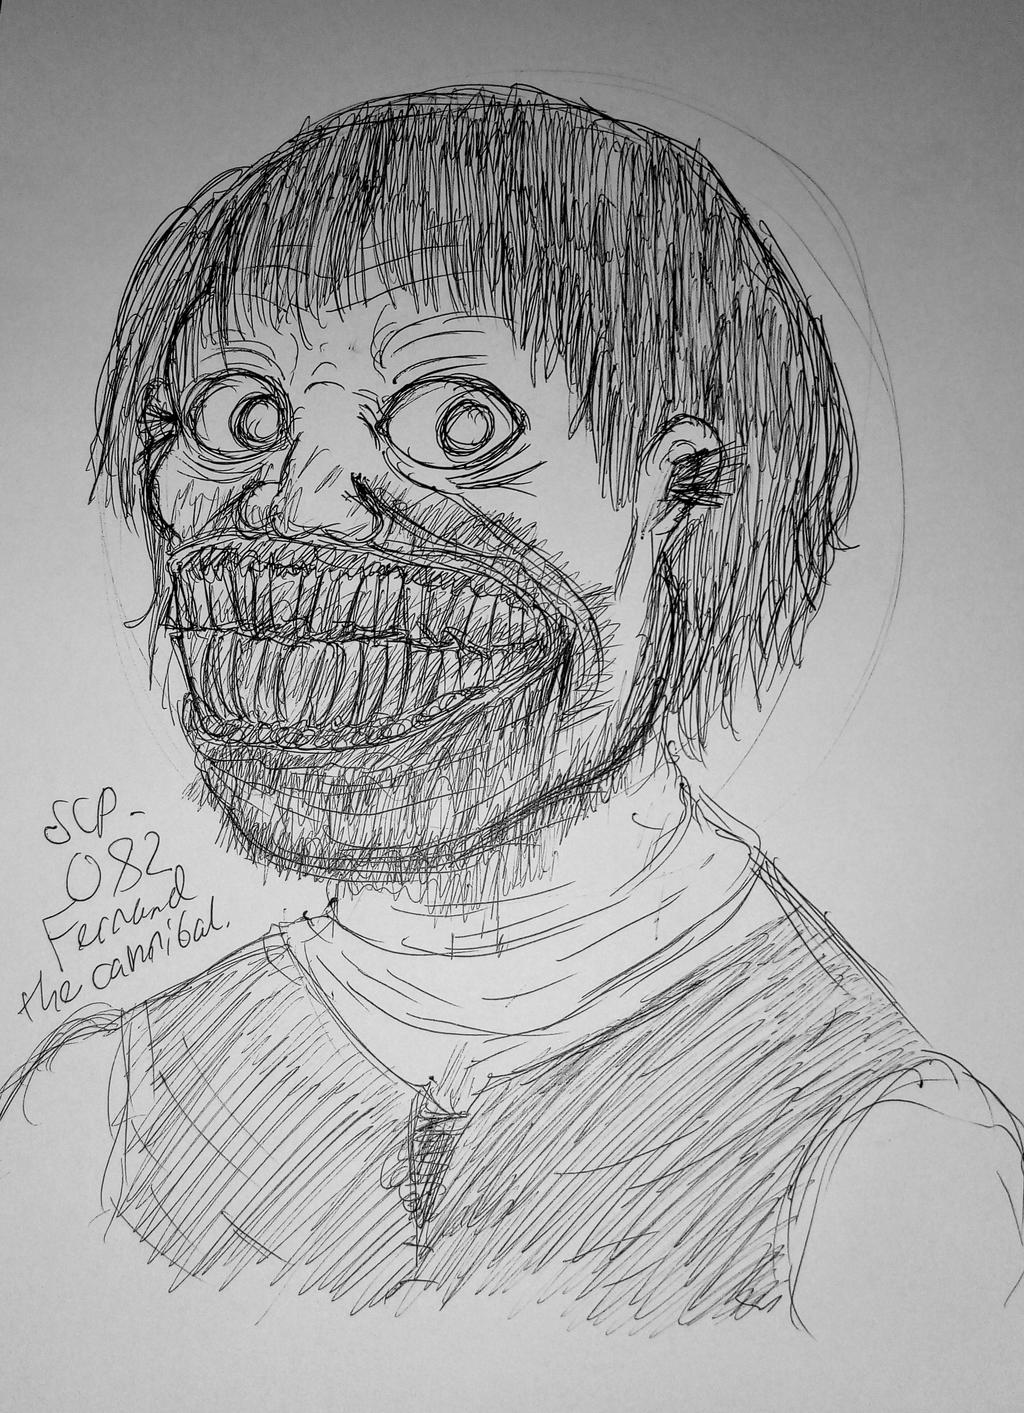 Scp 082 Fernand The Cannibal By Theboredashell On Deviantart Hard to know how to minimalize someone that's already a drawing, though. scp 082 fernand the cannibal by